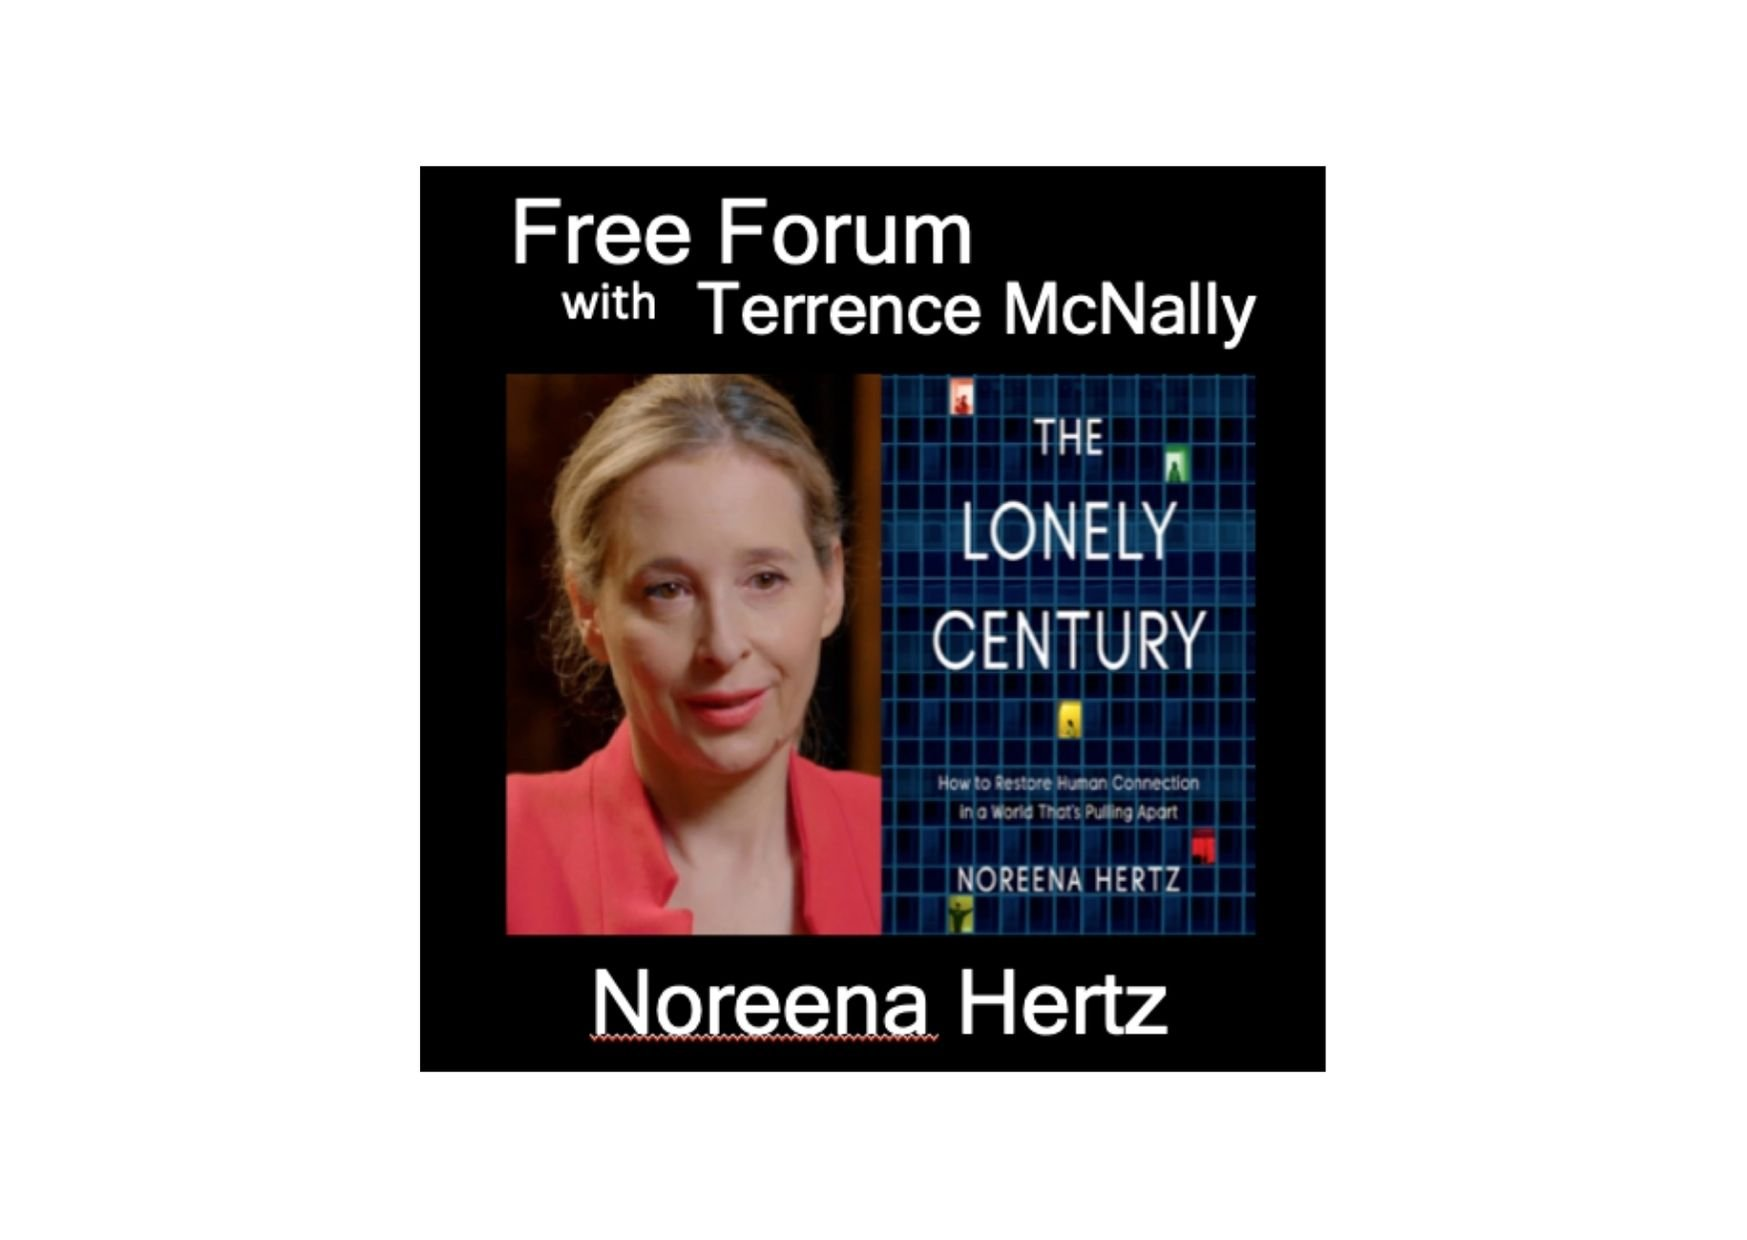 Noreena's Interview with Terrence McNally, Free Forum Podcast